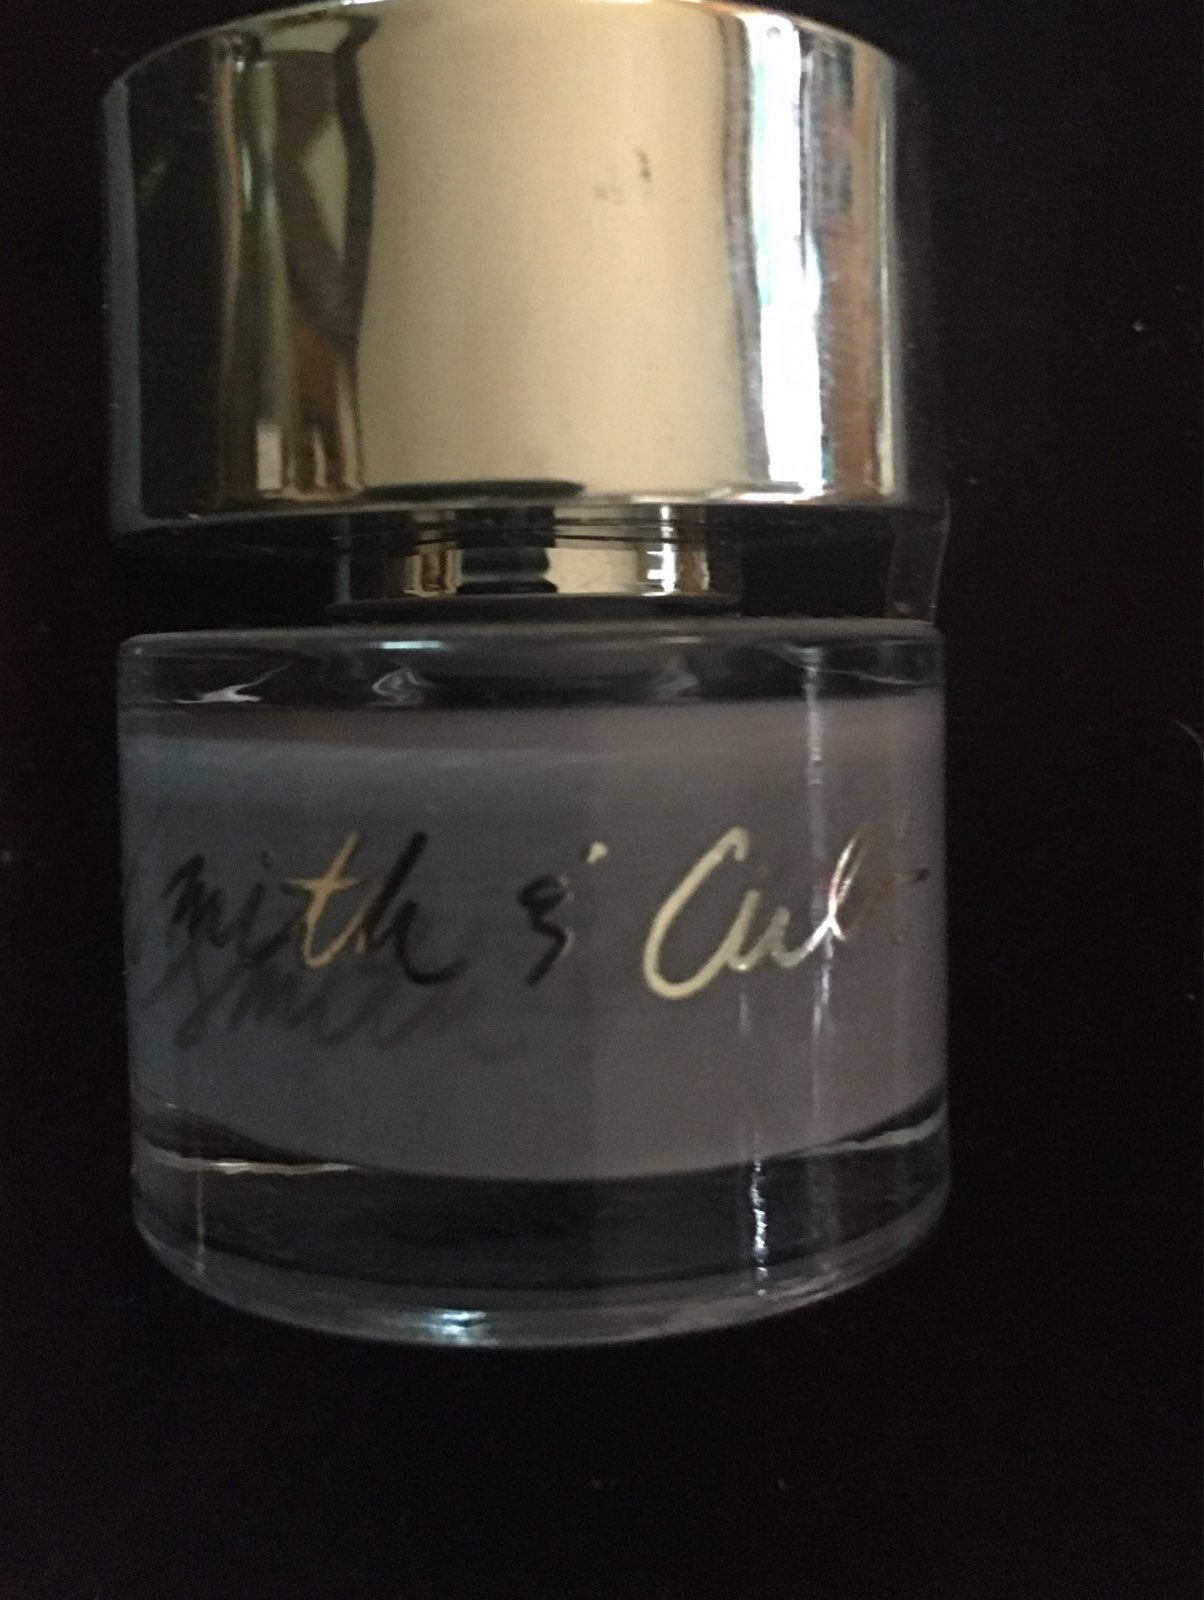 Smith Cult Nail Polish